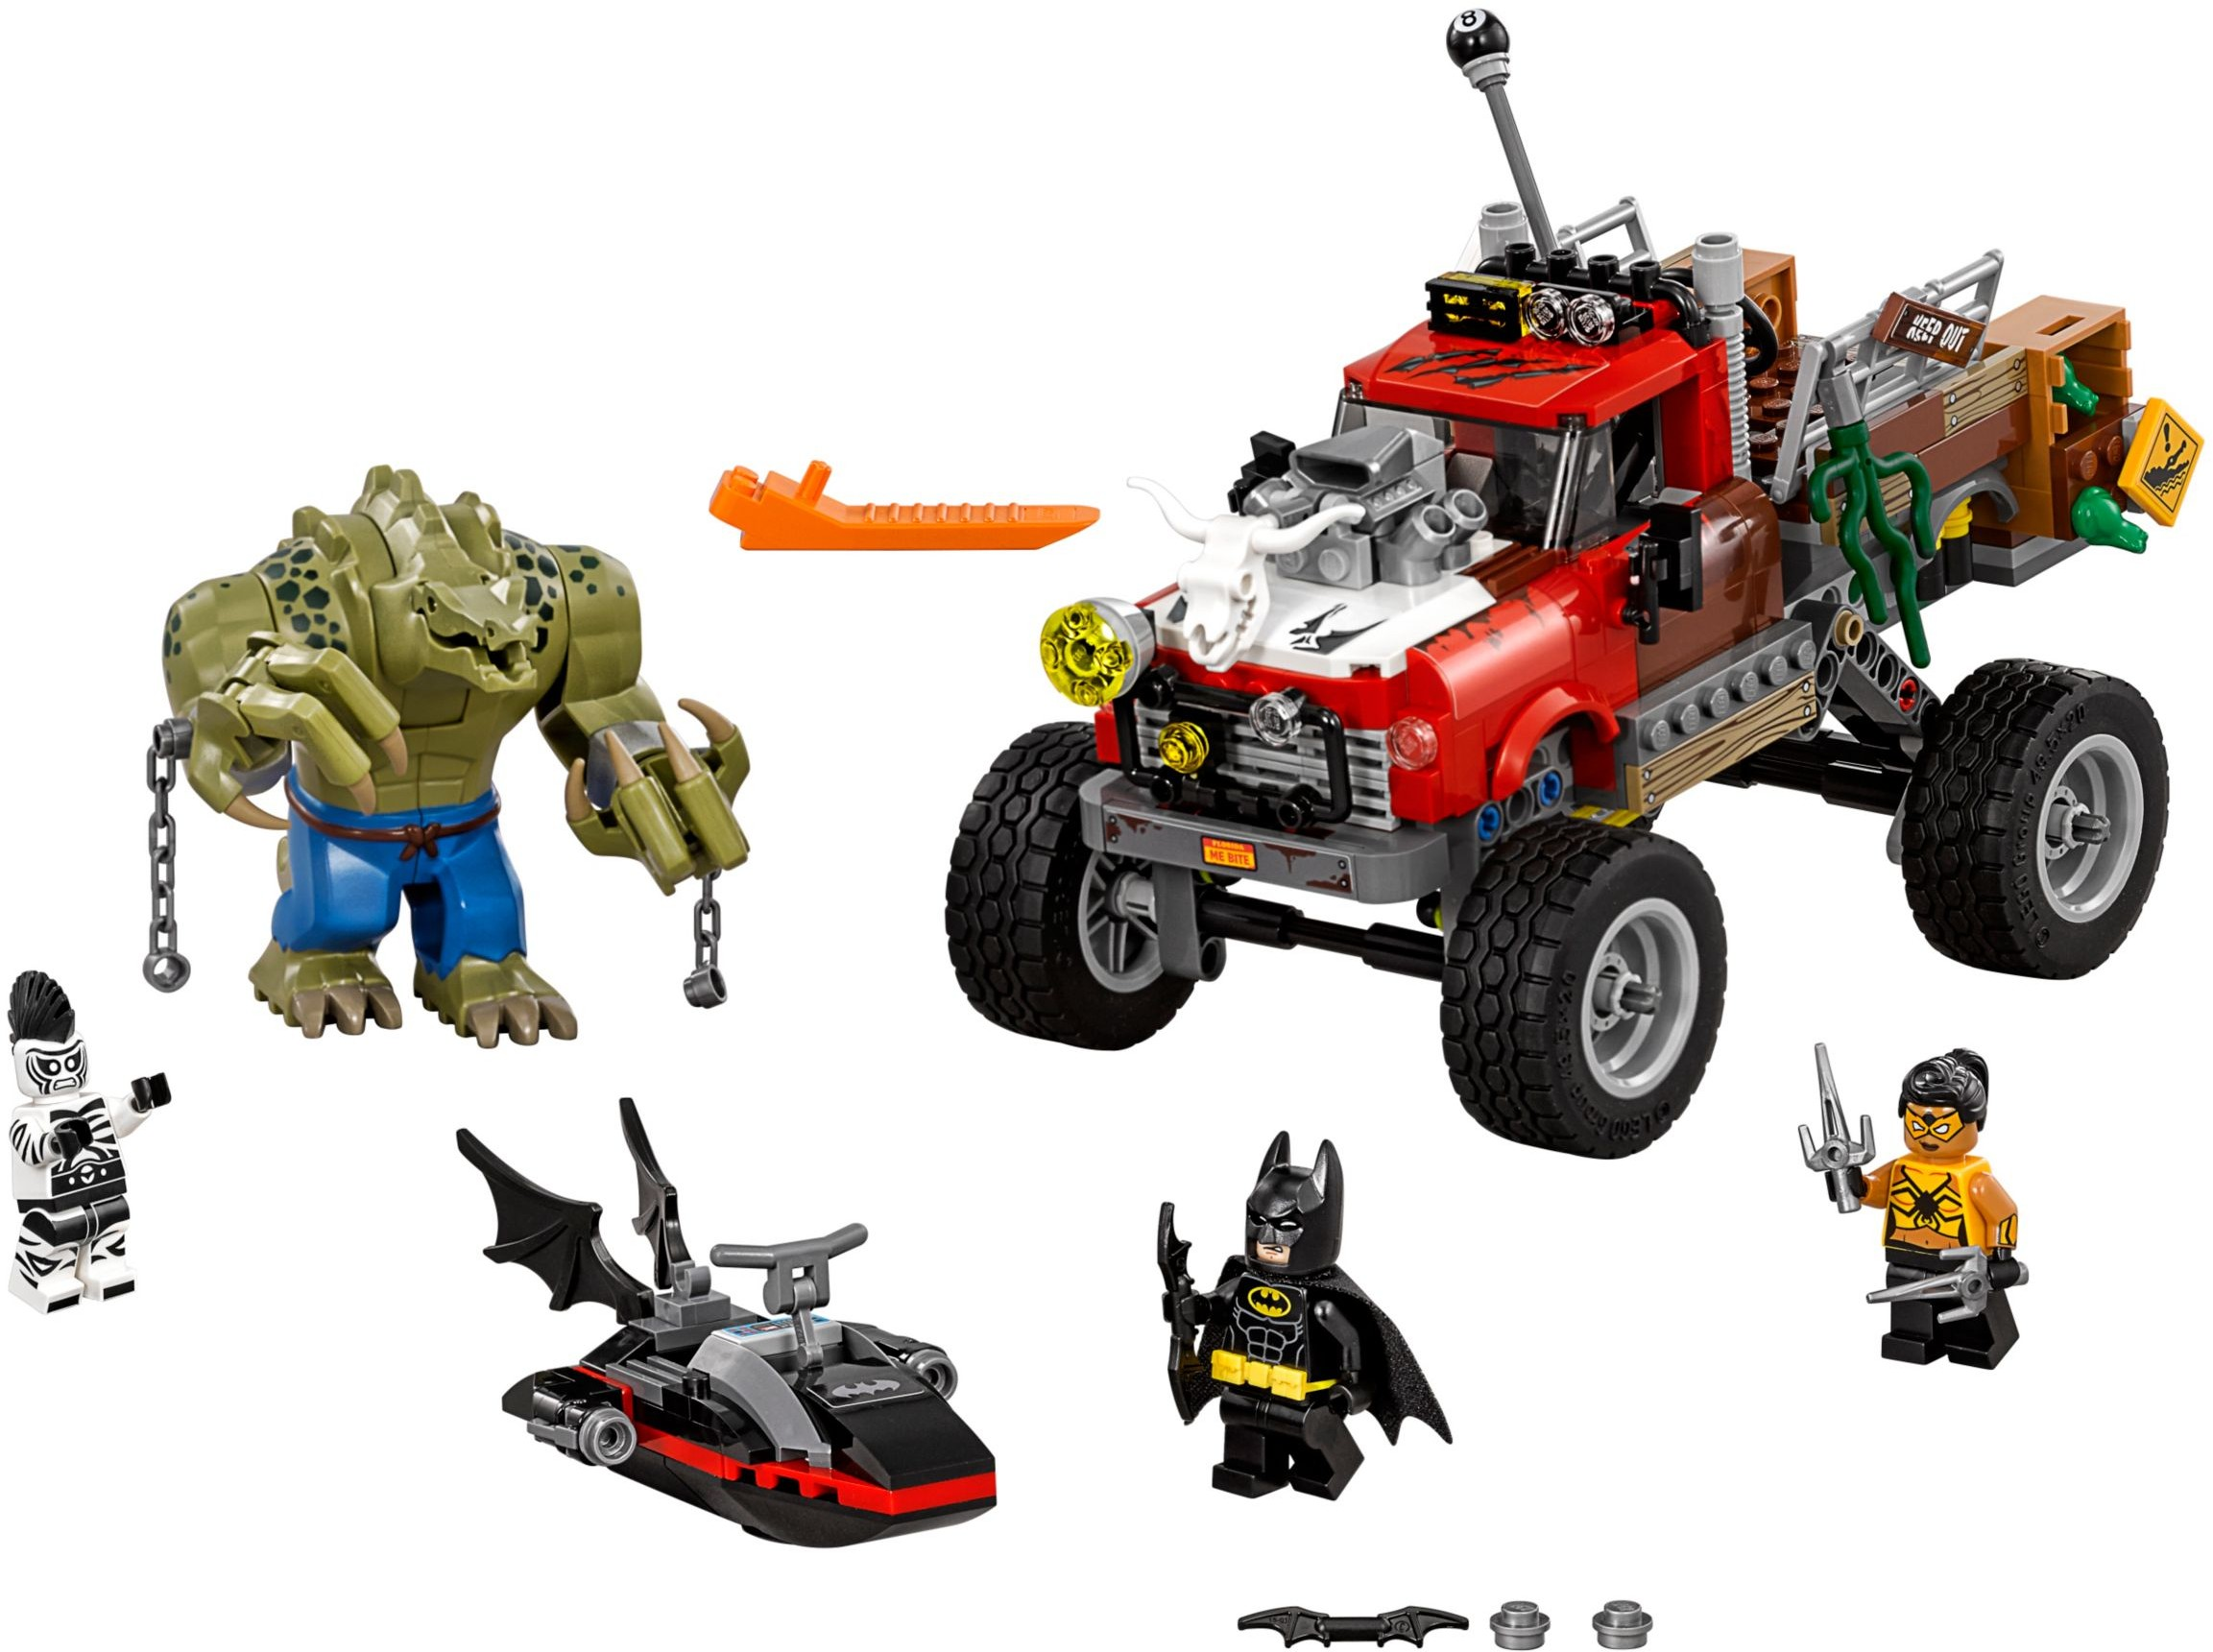 break helicopter toy with The Lego Batman Movie Official Images on 2018 Dc Super Heroes Sets Revealed in addition 352079800859 besides Lego City 7498 Politiebureau likewise Lego Dimensions Wave 8 Expansion Packs Now Available For Pre Order additionally Predator Movie Shane Black.